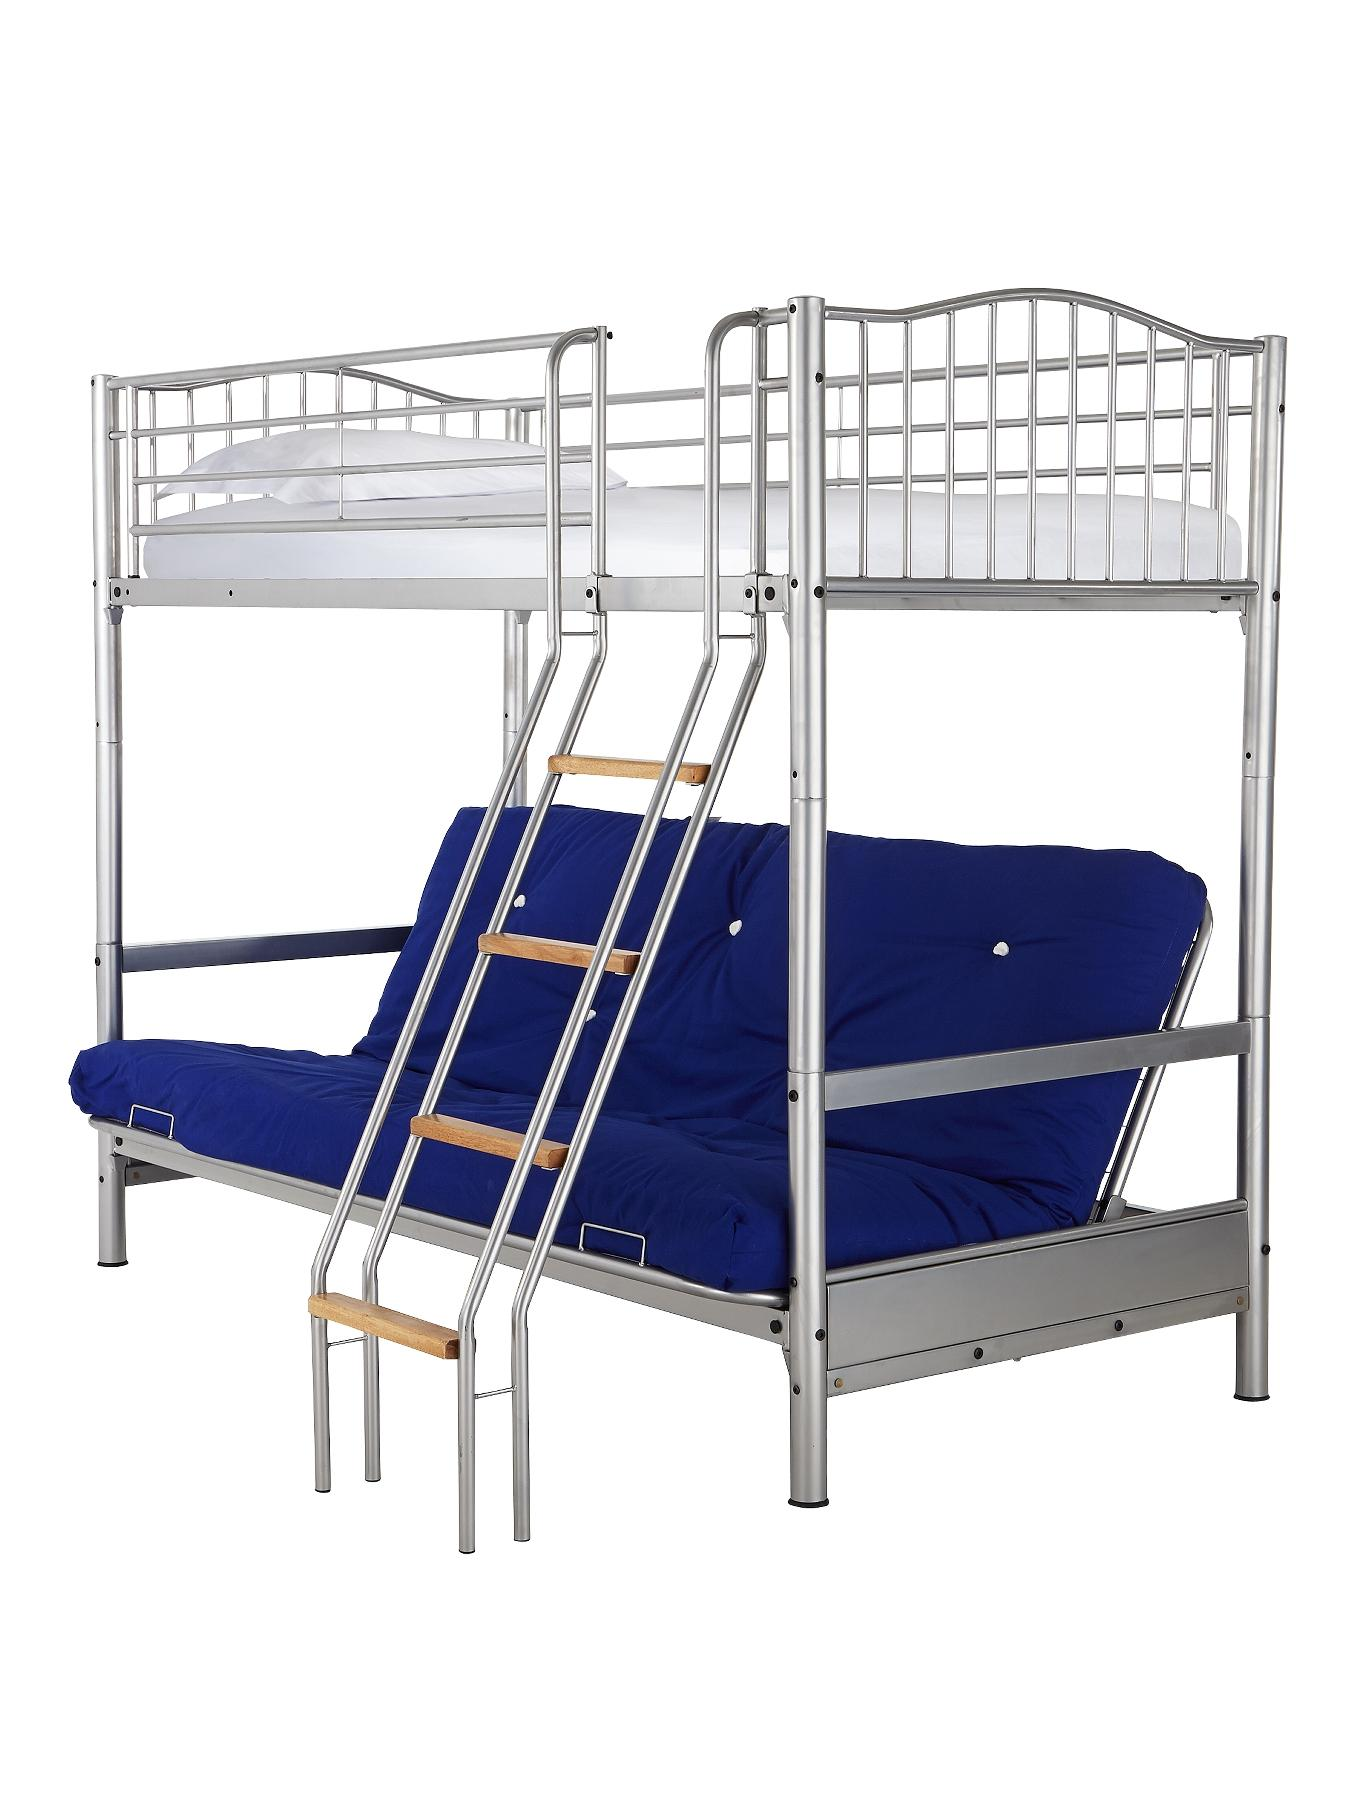 Alaska Futon Metal Bunk Bed GreenBlackPinkBlue